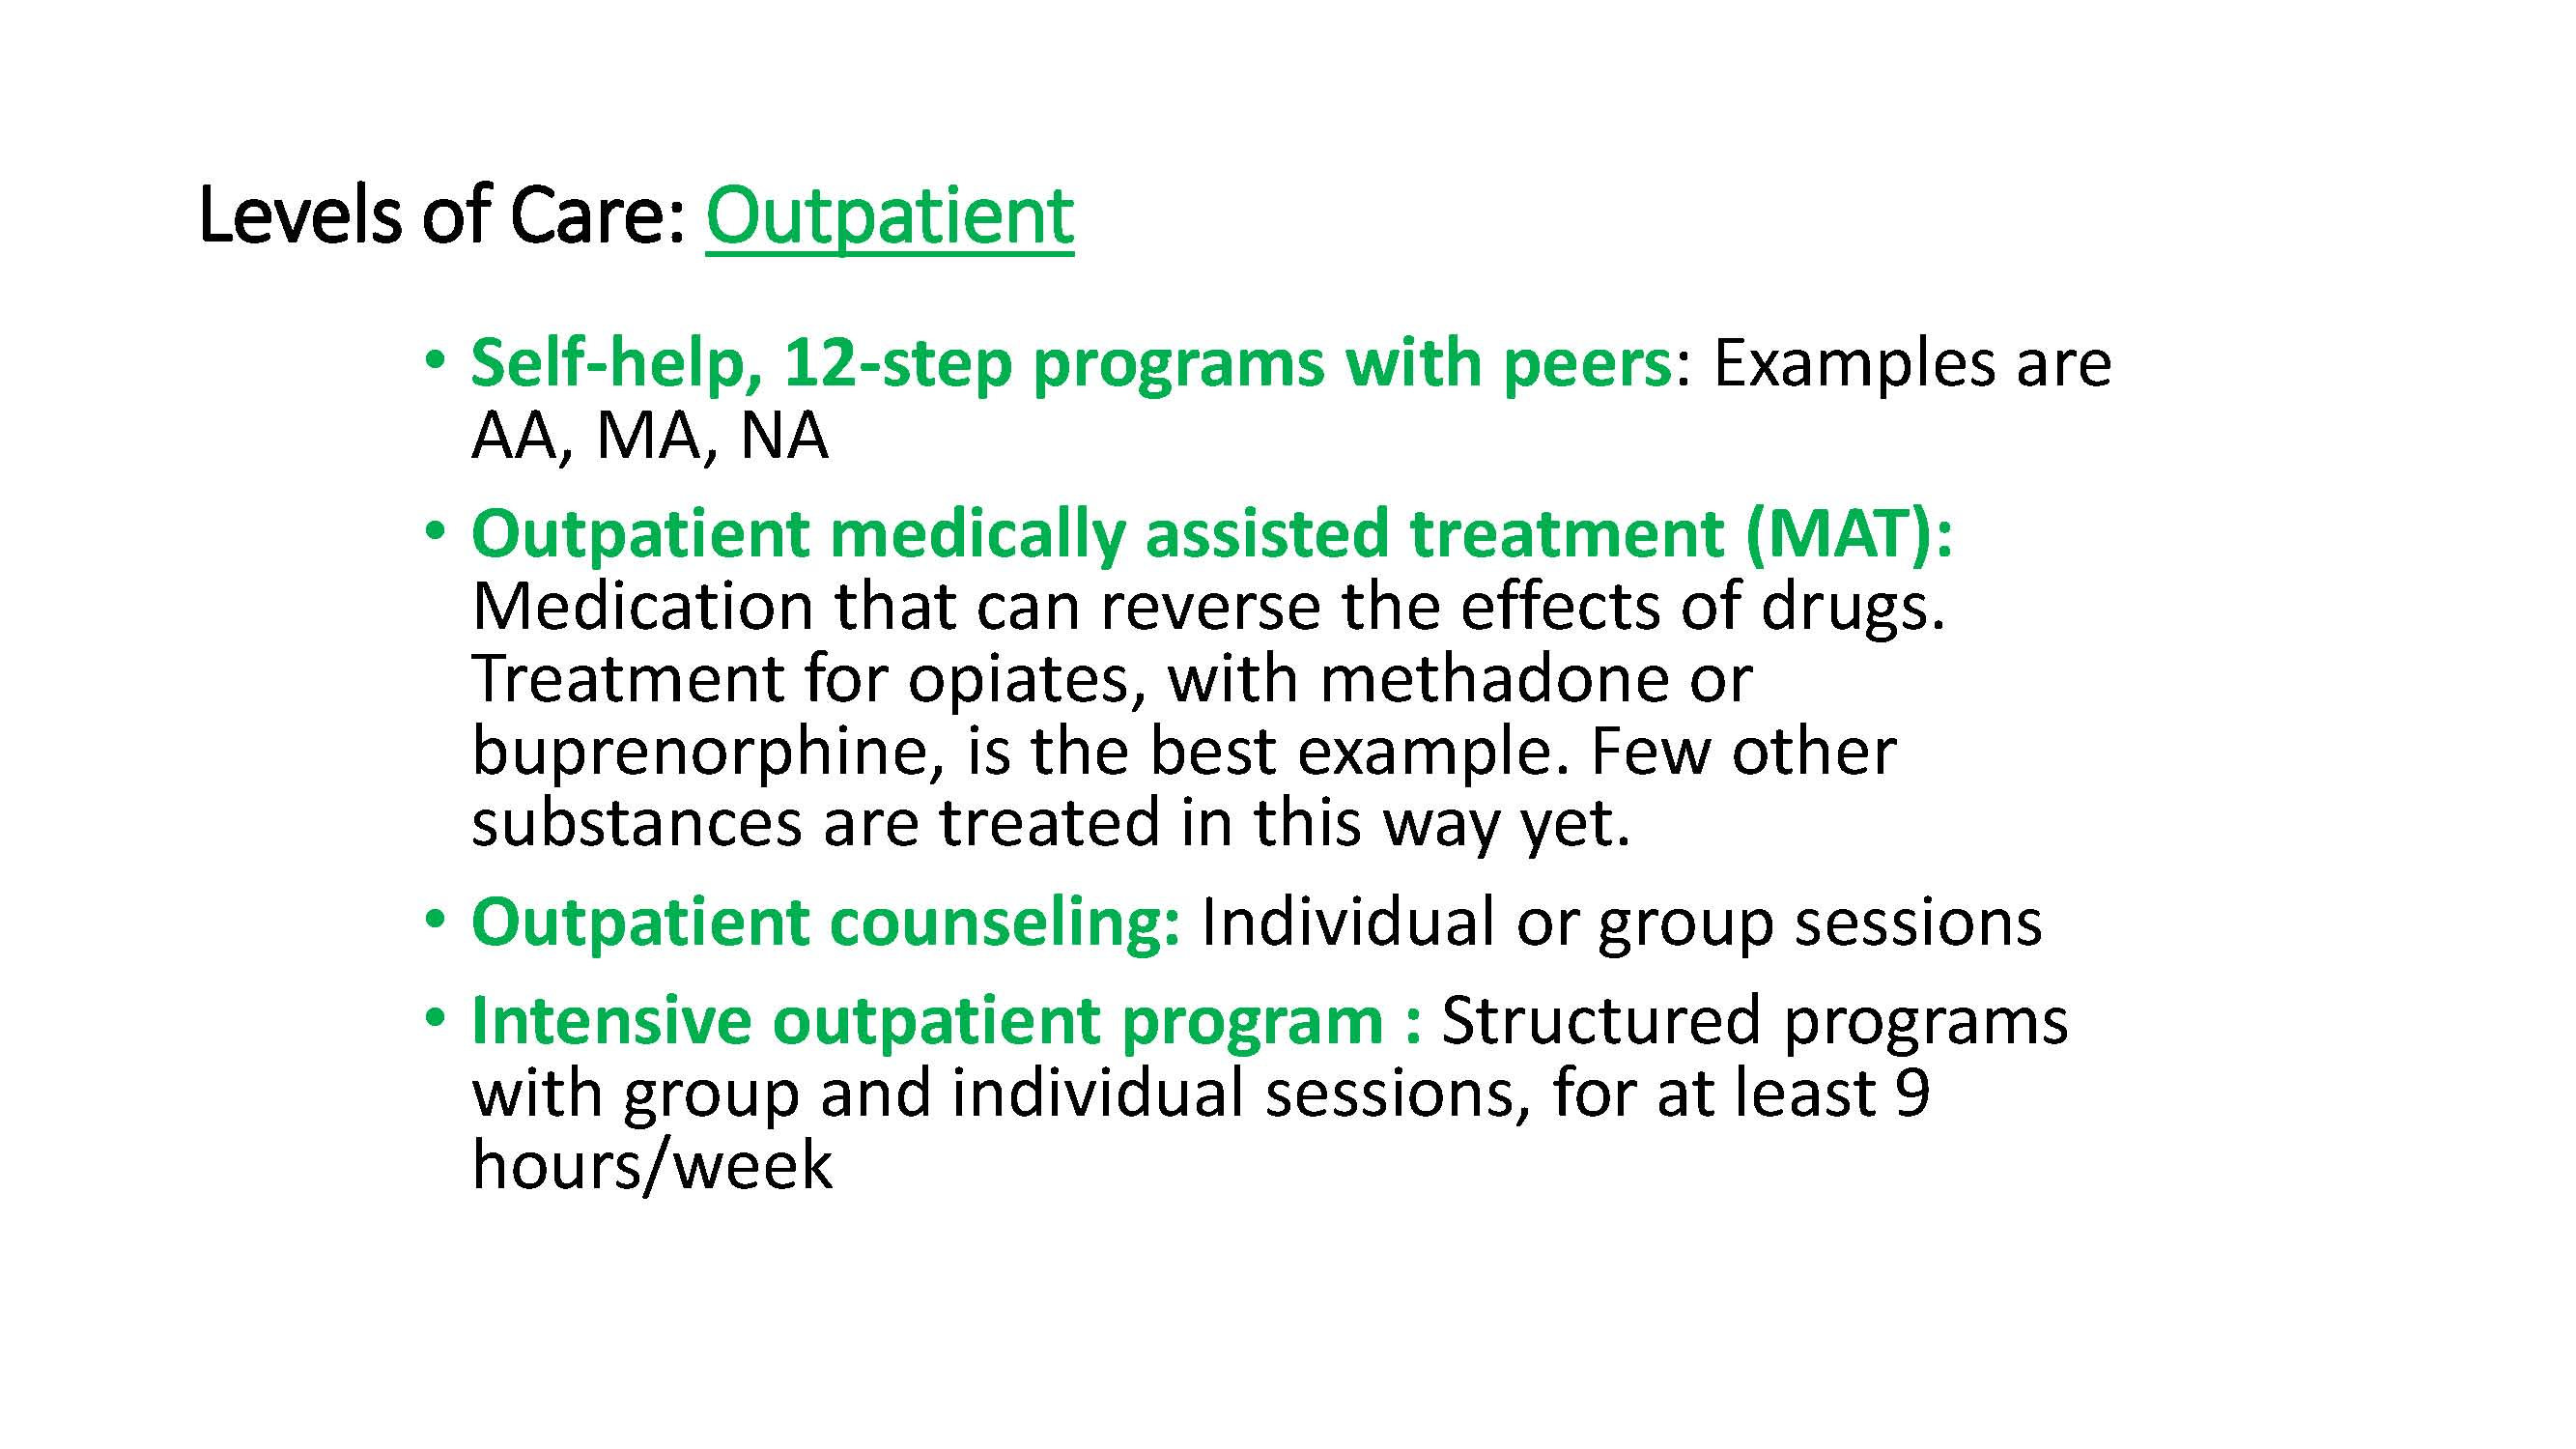 OutpatientTreatment